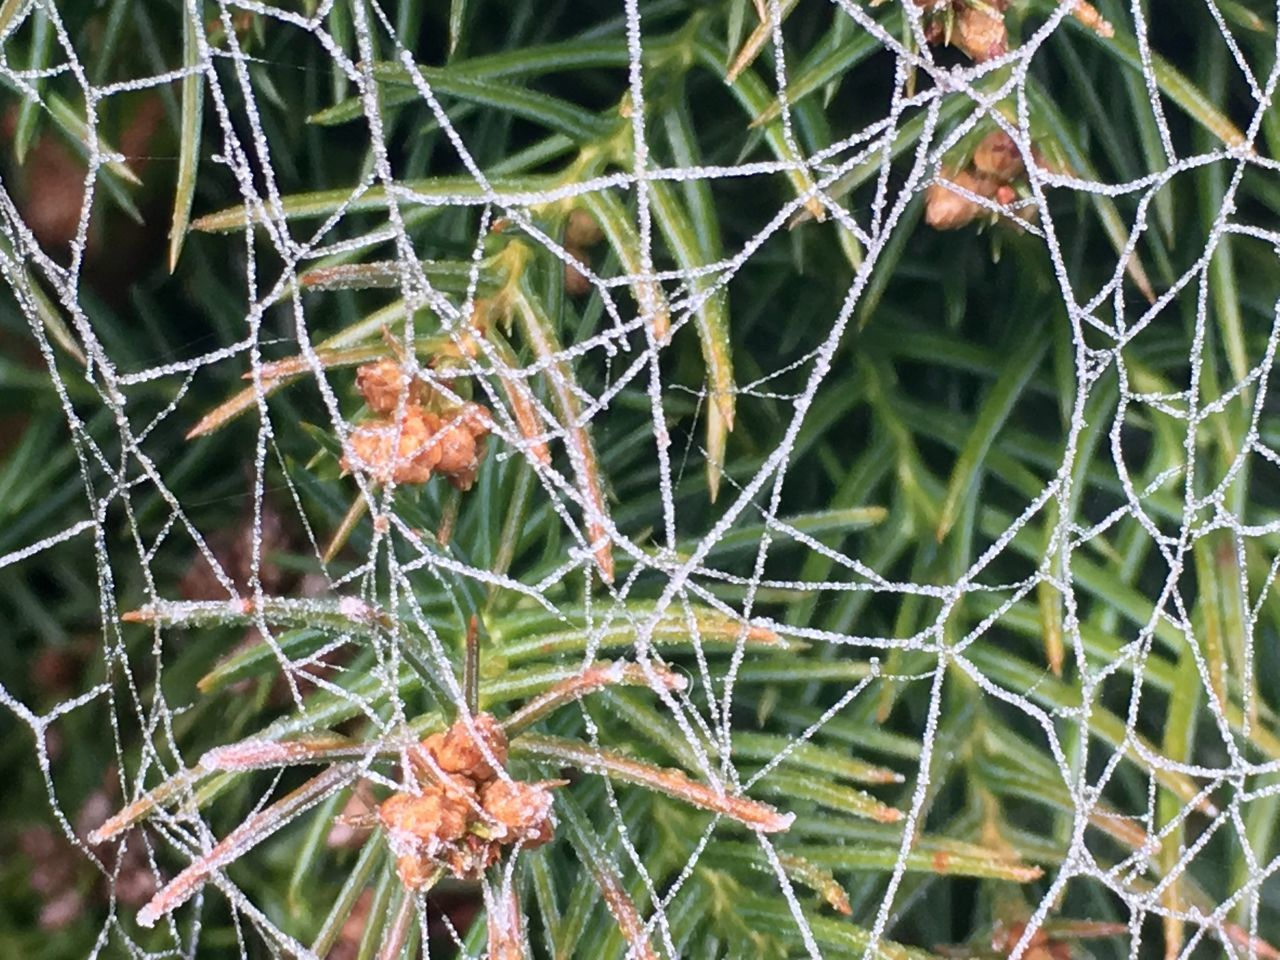 spider web, cactus, nature, focus on foreground, growth, thorn, close-up, web, green color, day, plant, outdoors, trapped, survival, complexity, no people, beauty in nature, fragility, risk, prickly pear cactus